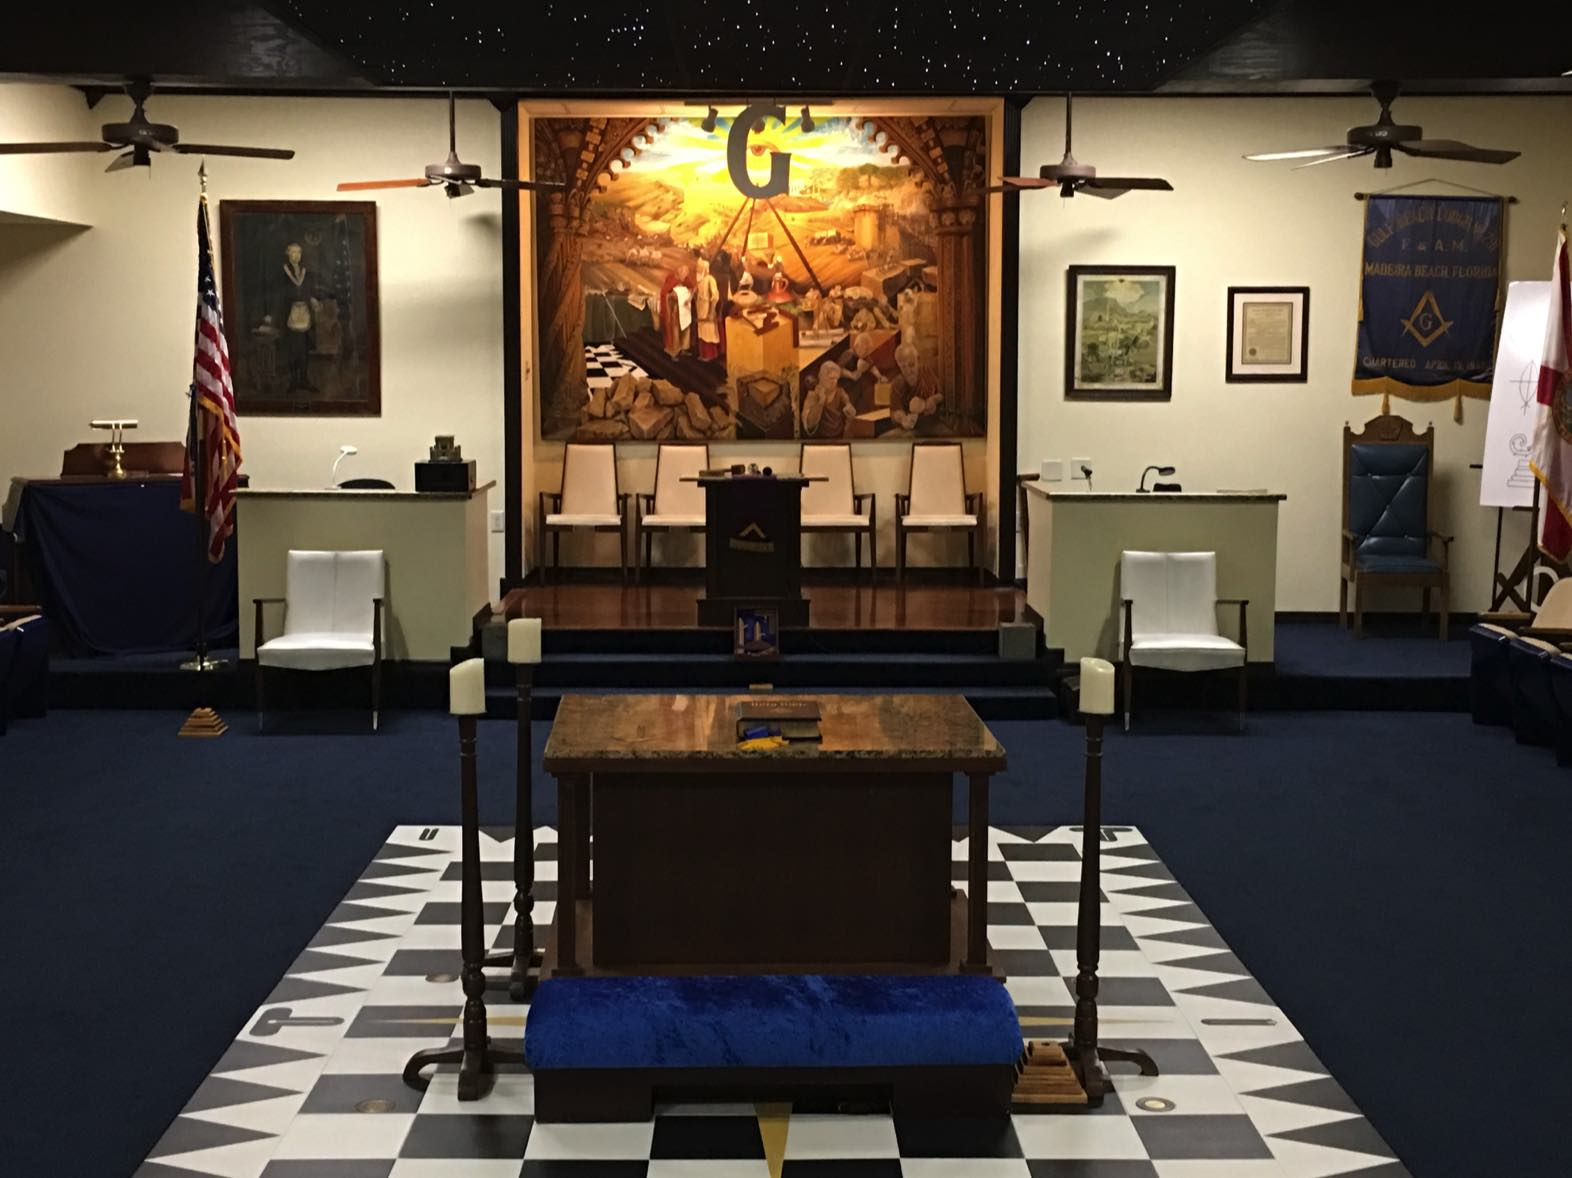 Gulf Beach Masonic Lodge, No. 291